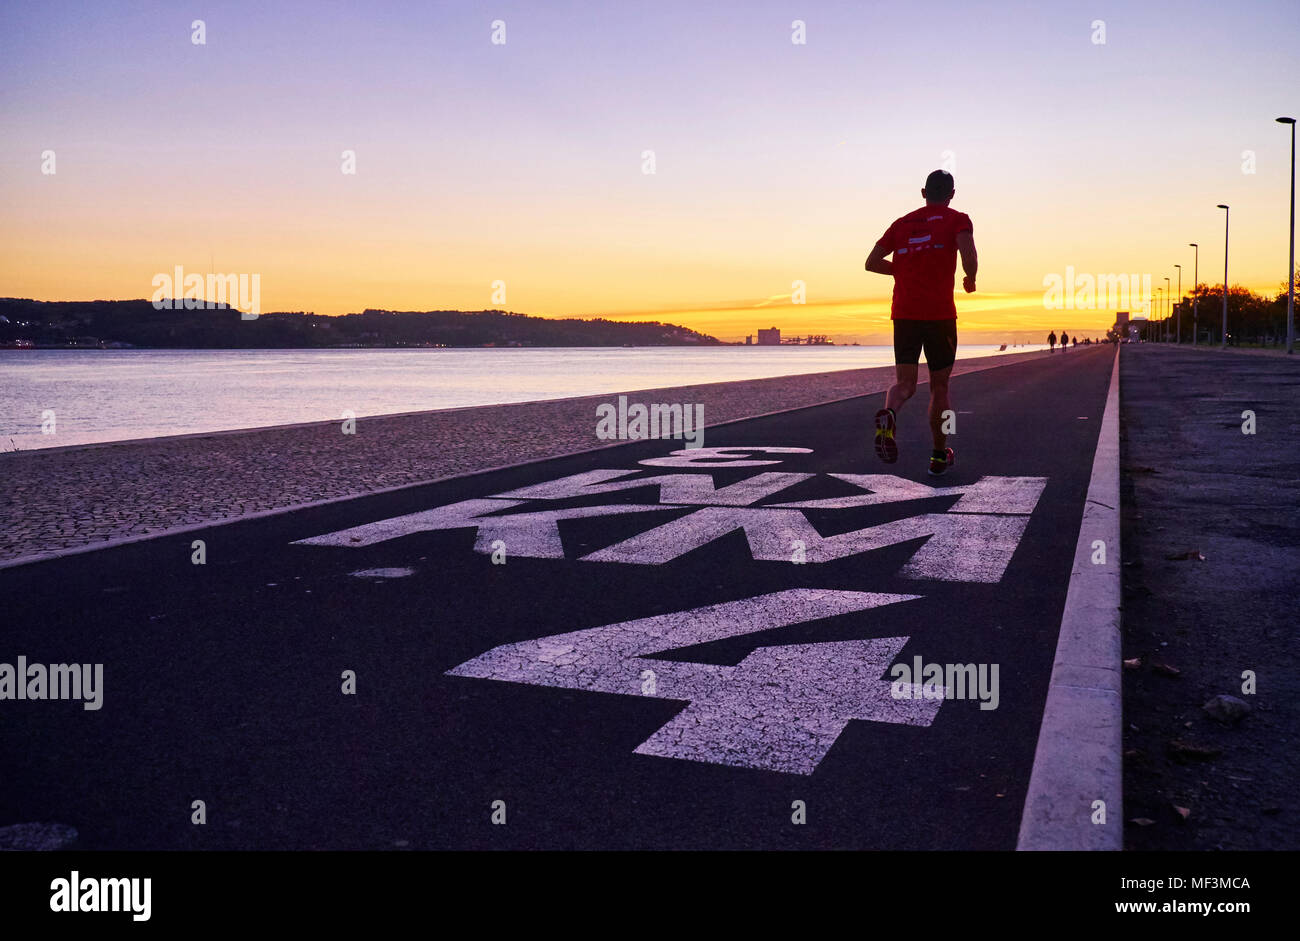 Portugal, Lisbon, Tagus river at sunset, jogger - Stock Image